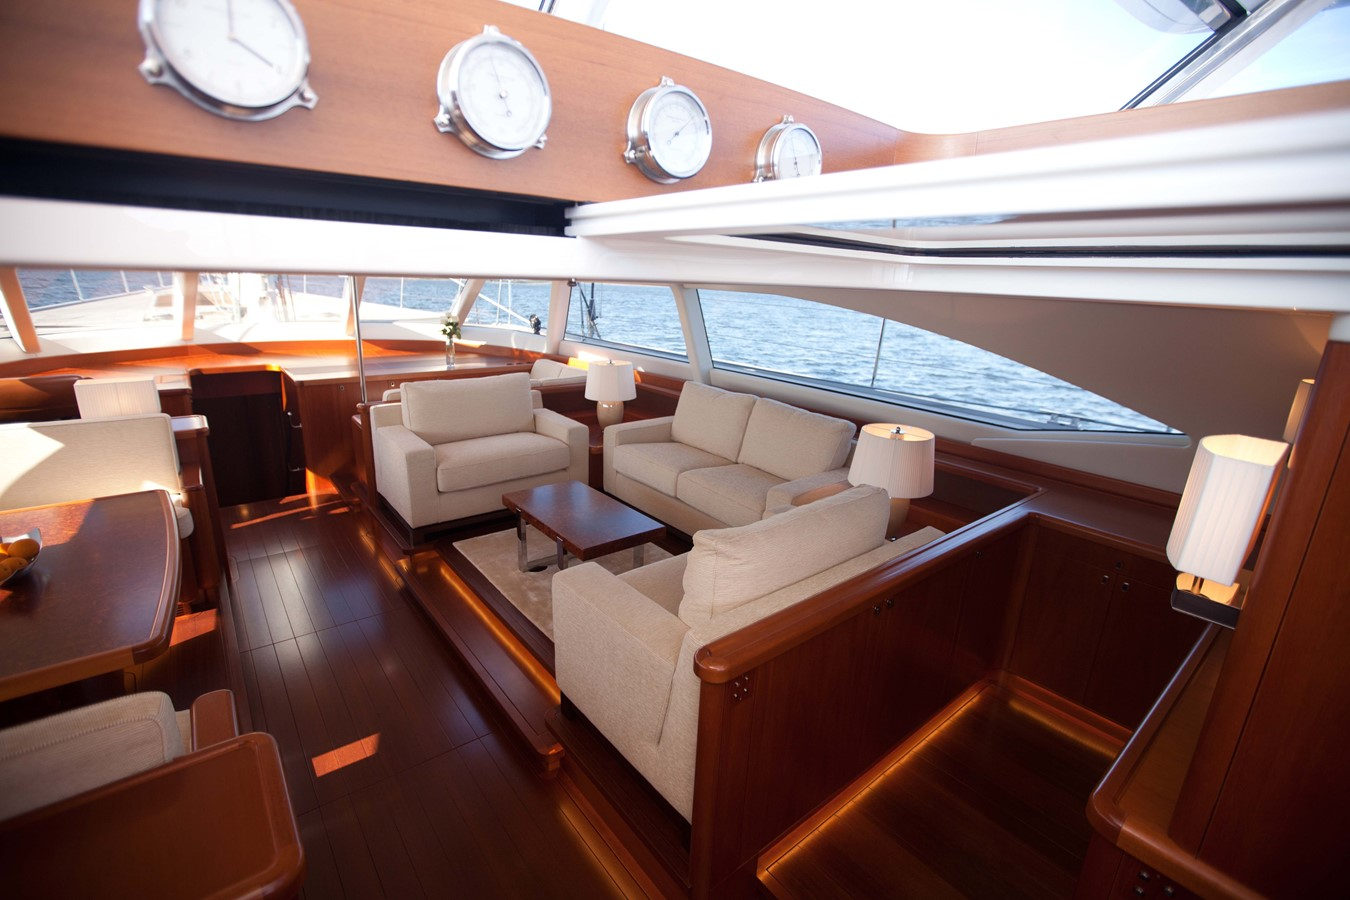 2014 NAUTOR'S SWAN  Performance Sailboat 1768973